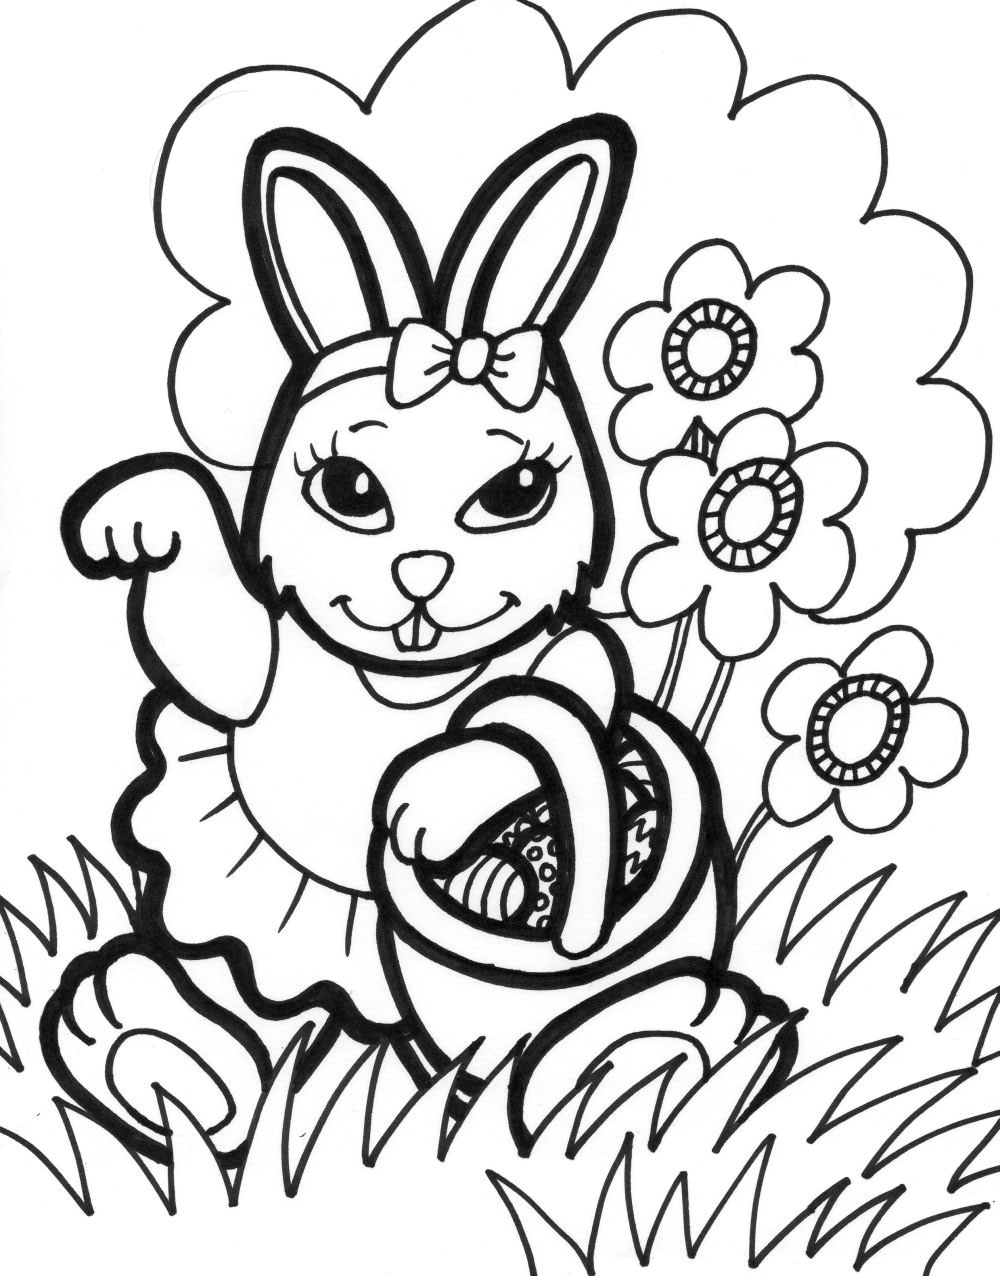 Coloring Pages Bunnies Coloring Pages free printable easter bunny coloring pages for kids pages